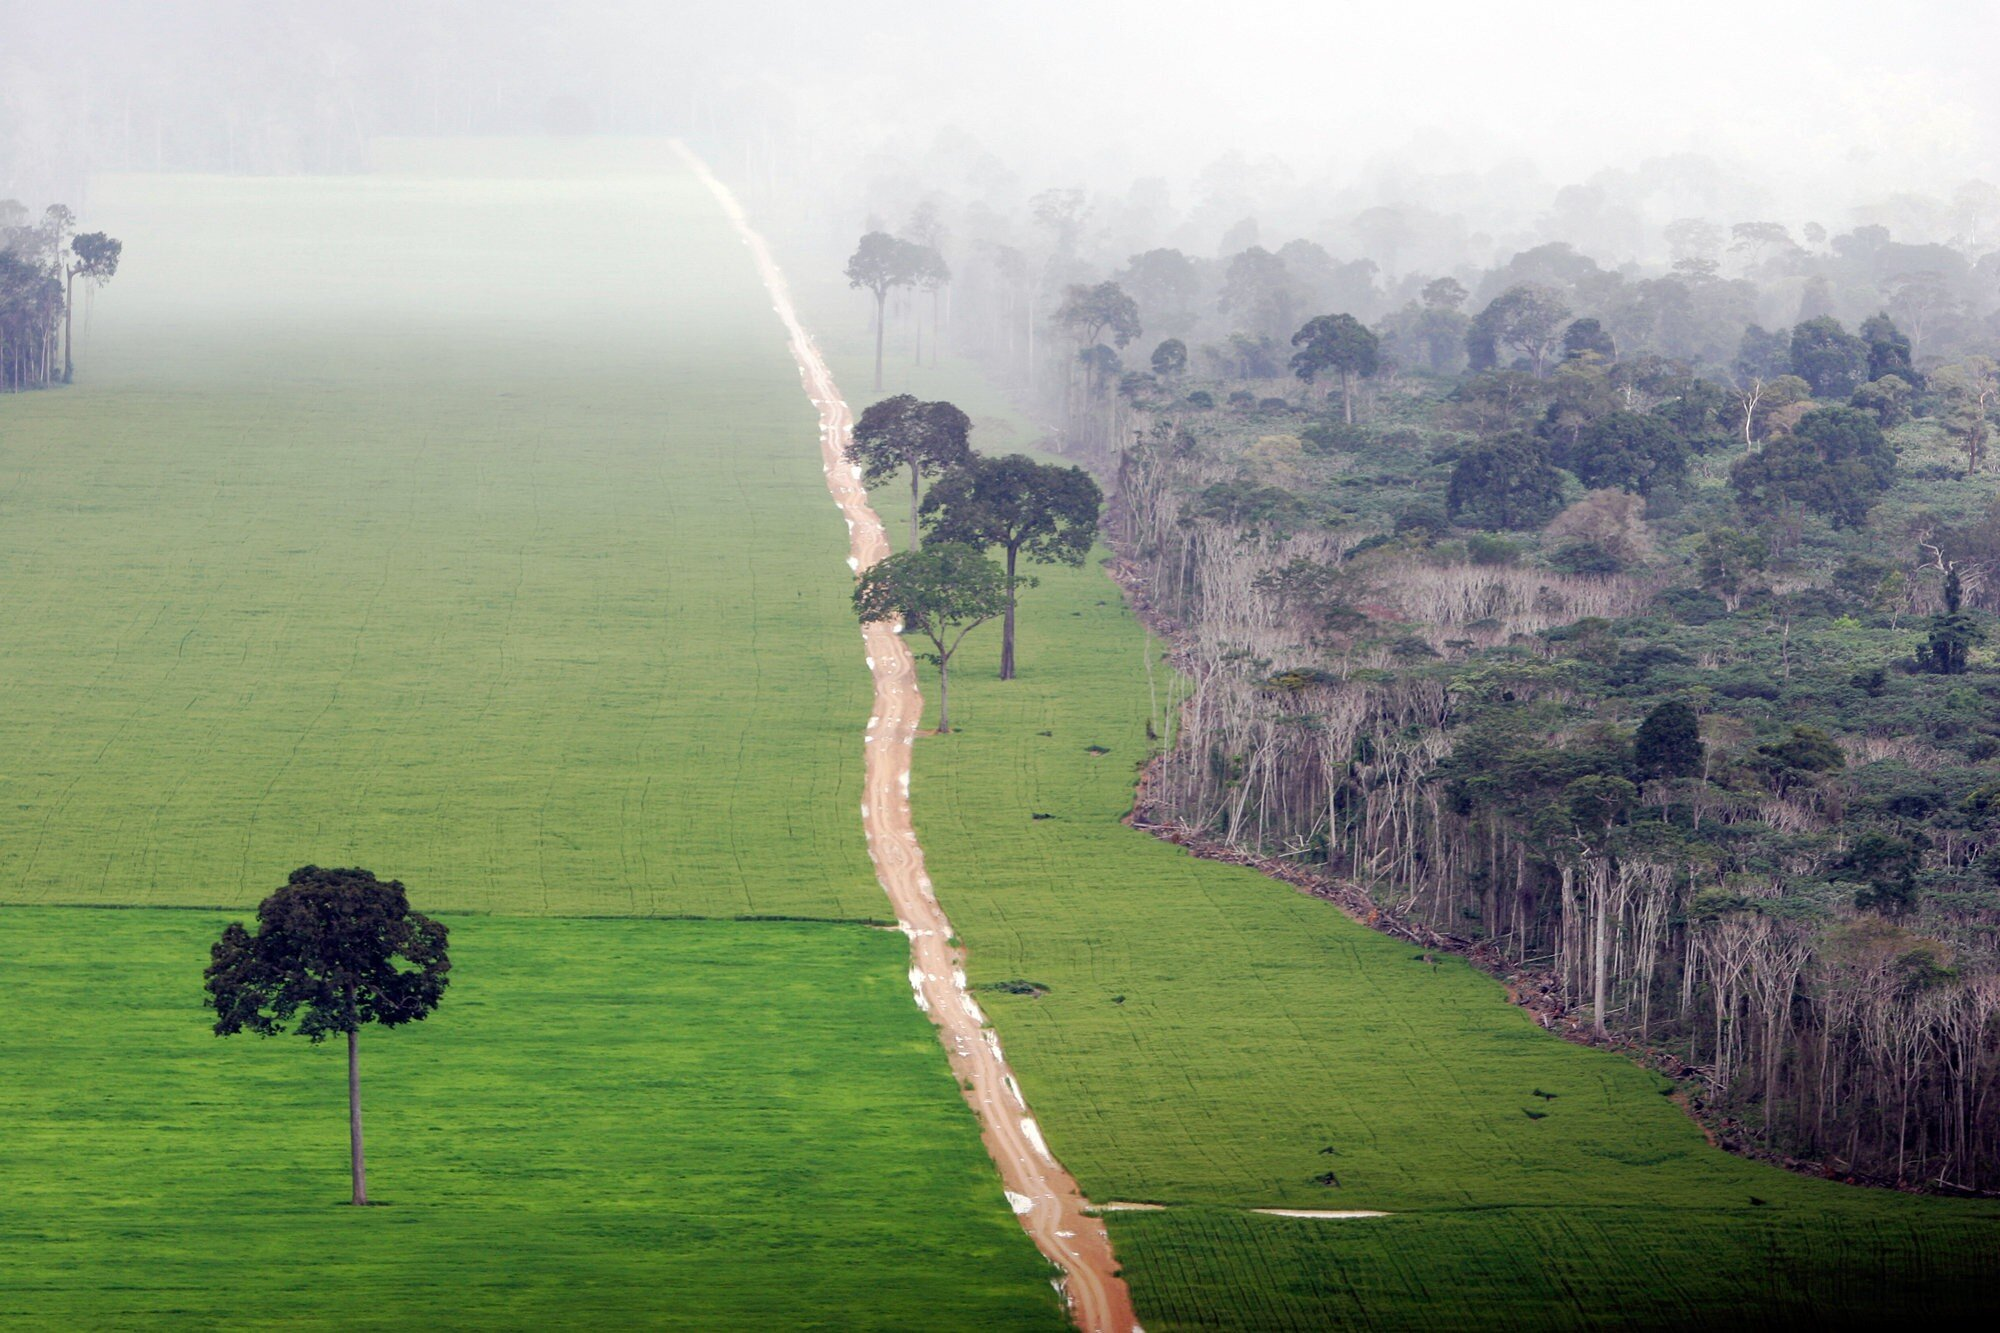 - There is 15.000 m2 of rainforest disappearing every second in places no one is watching.